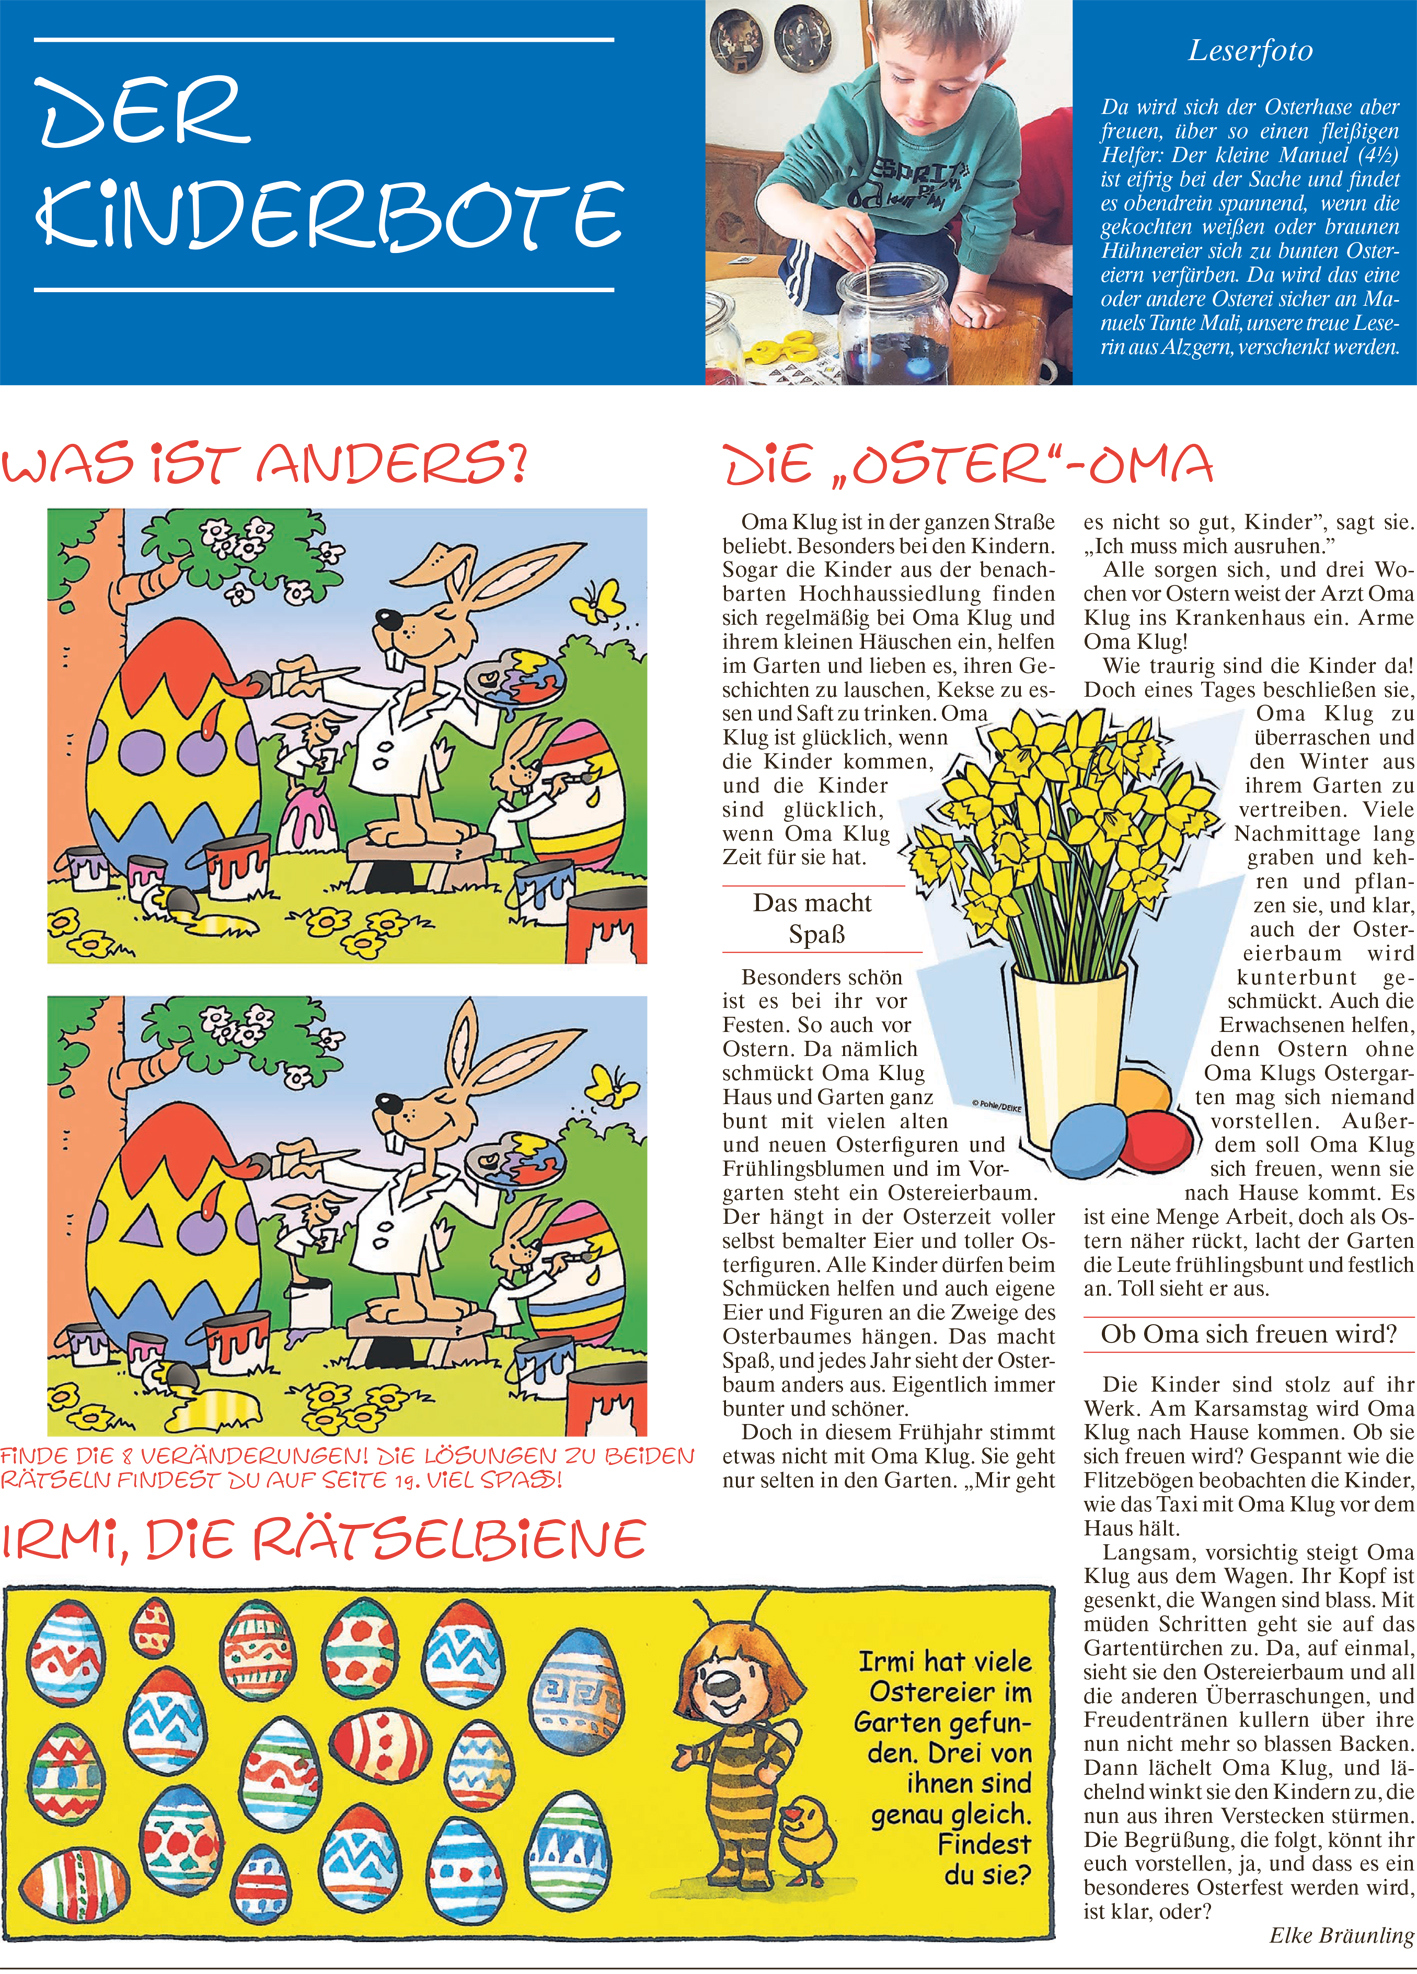 2020 125 jahre aoelfb kinderbote ostern 1apr2018